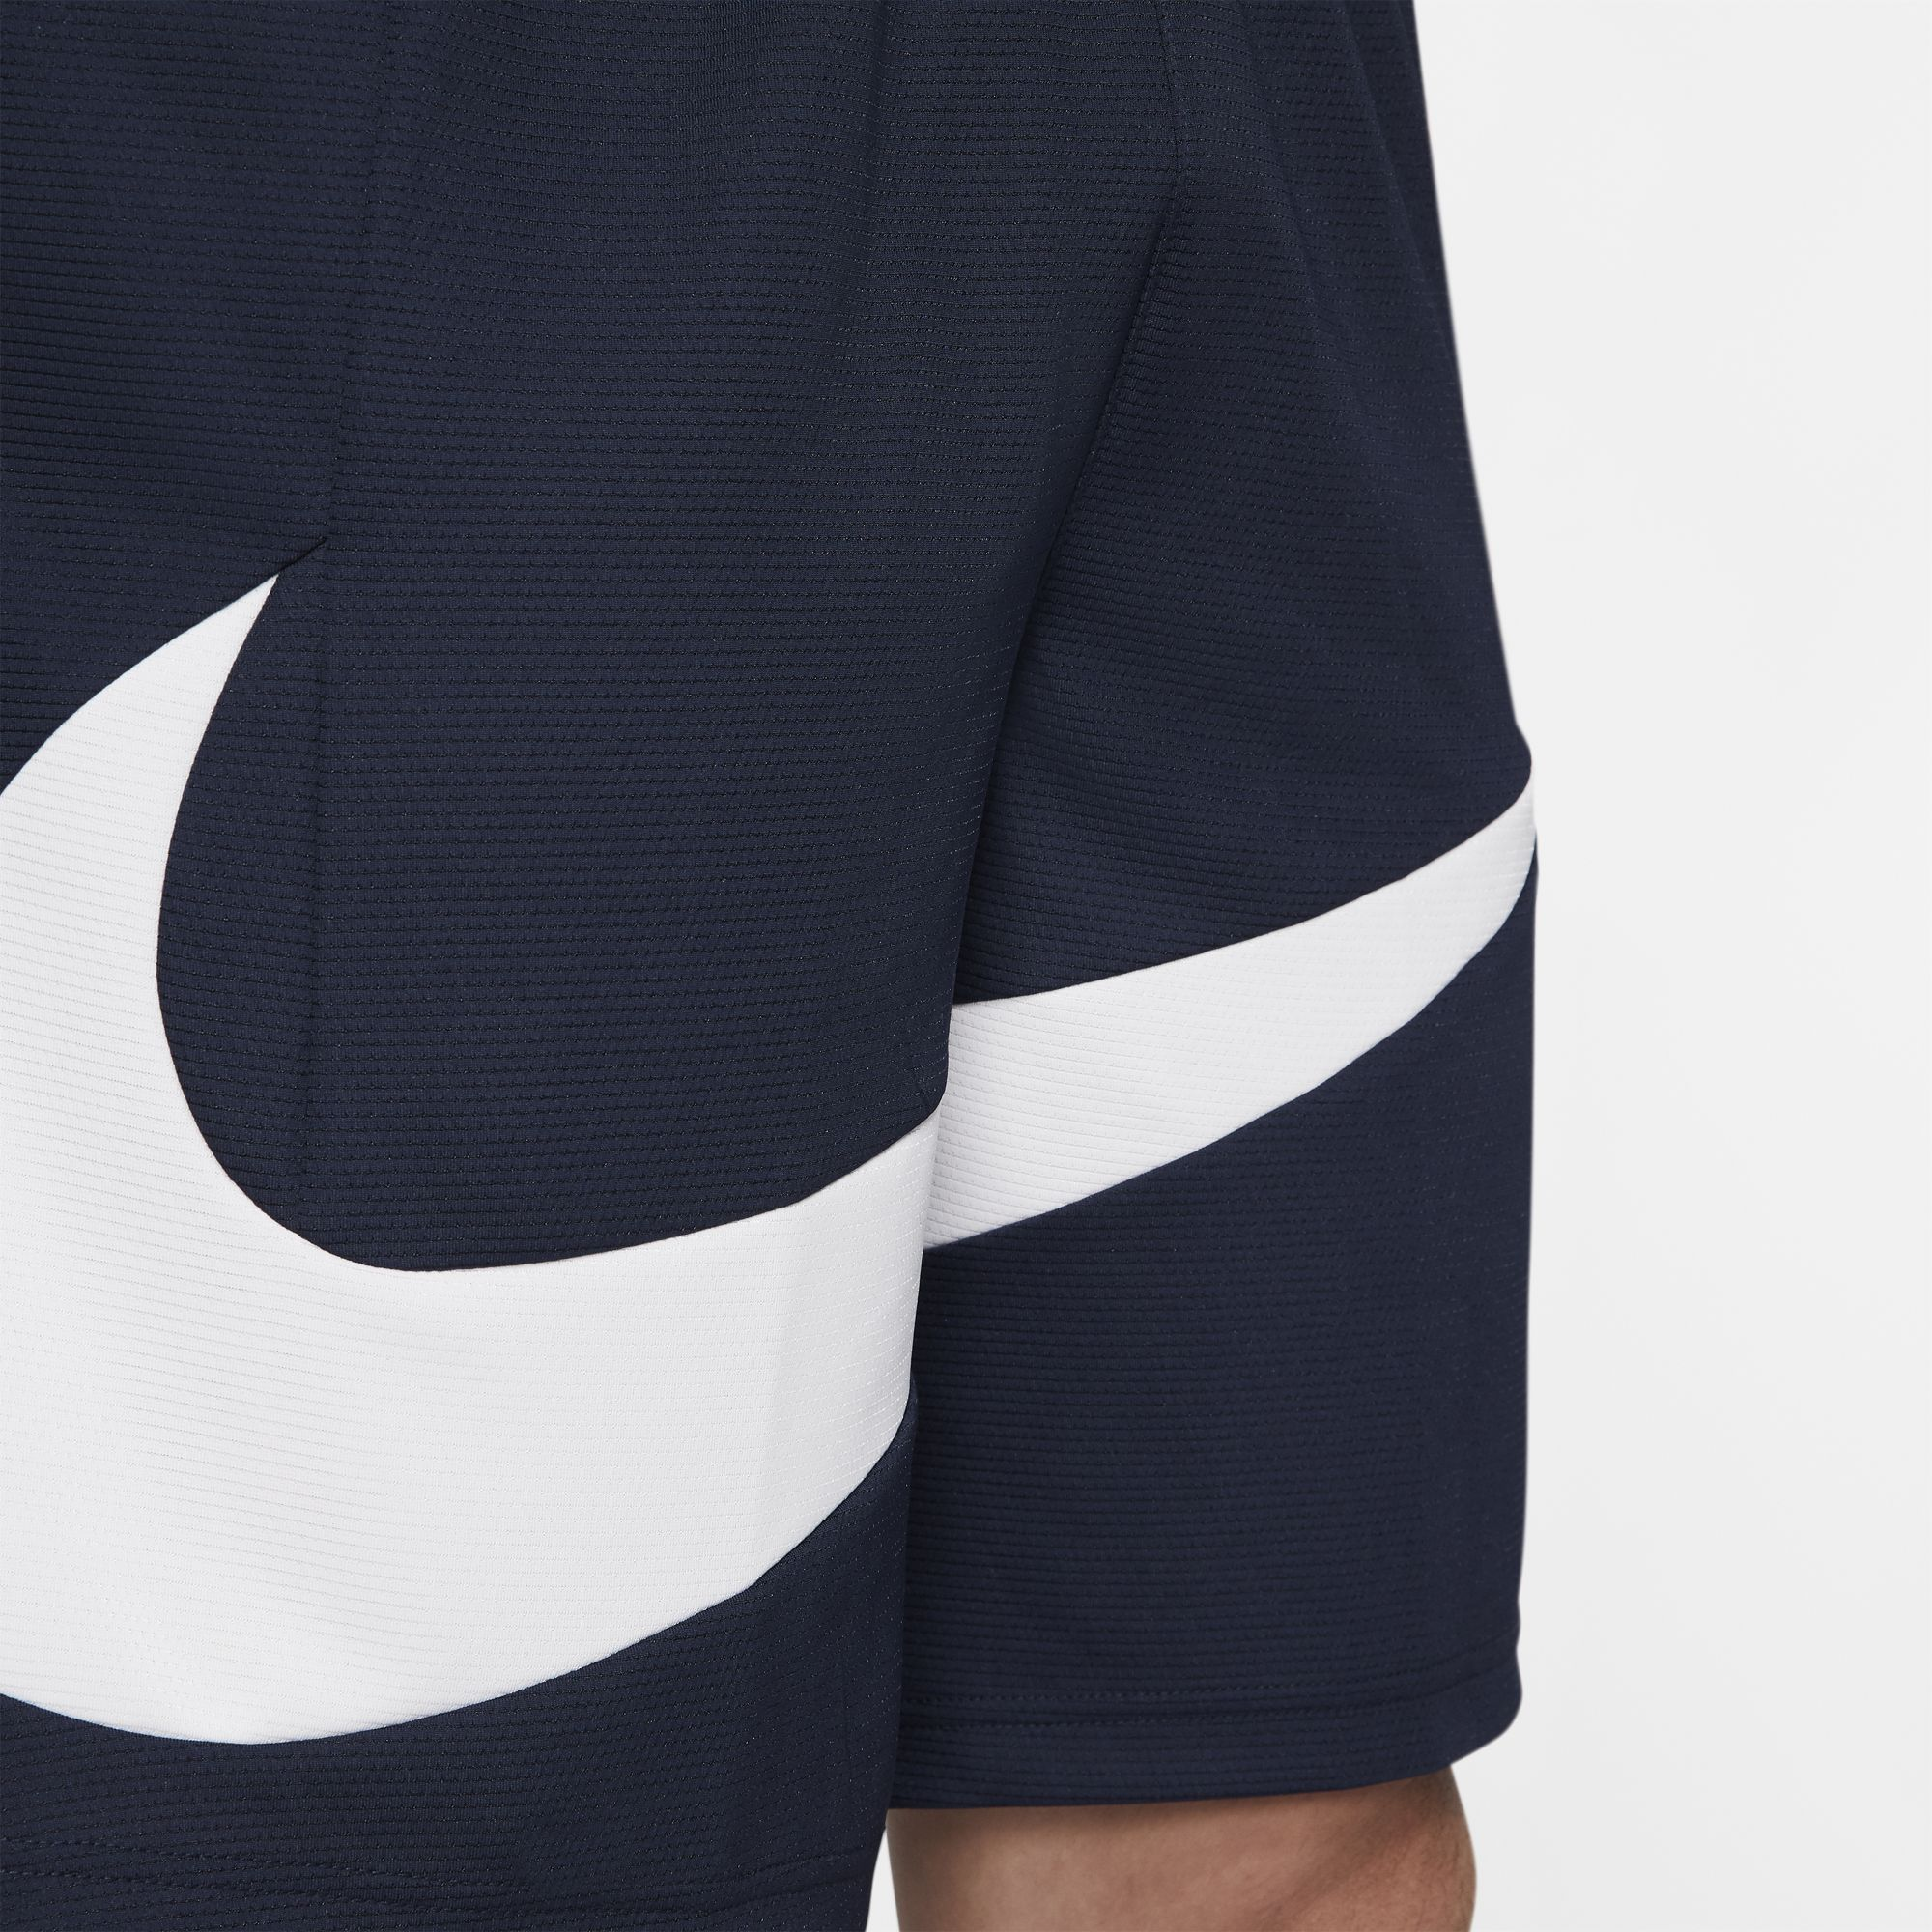 Nike Basketball Dri-Fit HBR Shorts - Obsidian/White